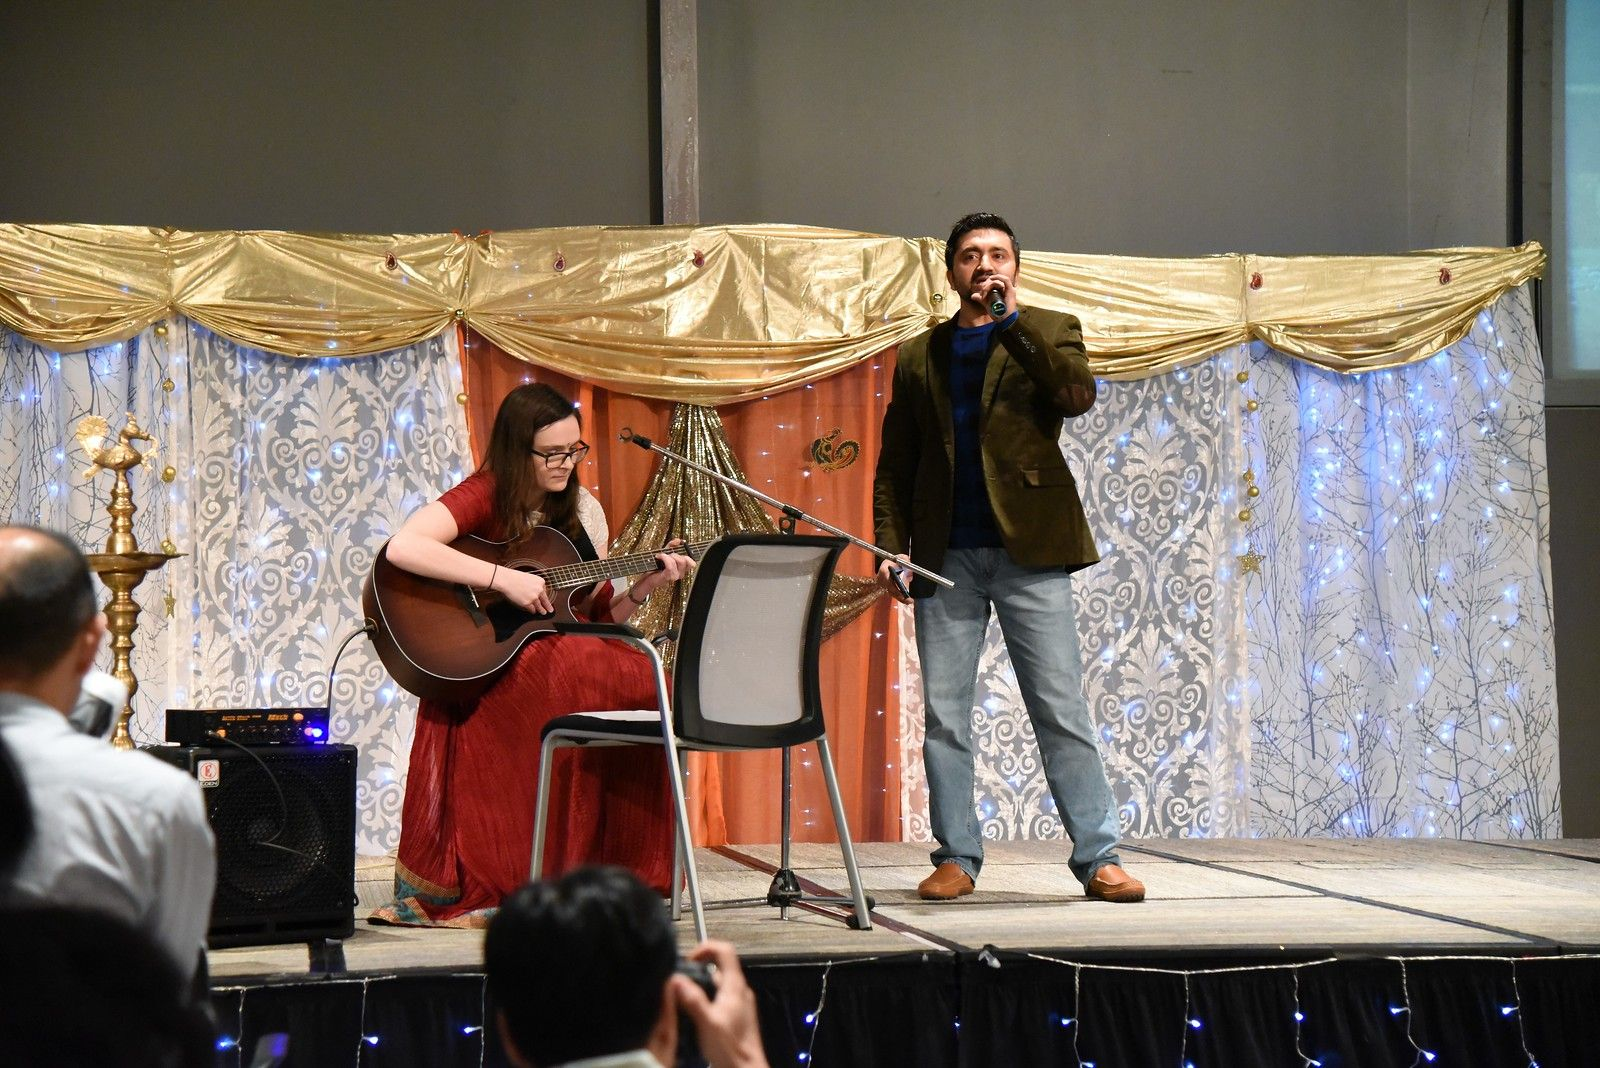 Diwali musical performances included employees singing and playing Indian songs.